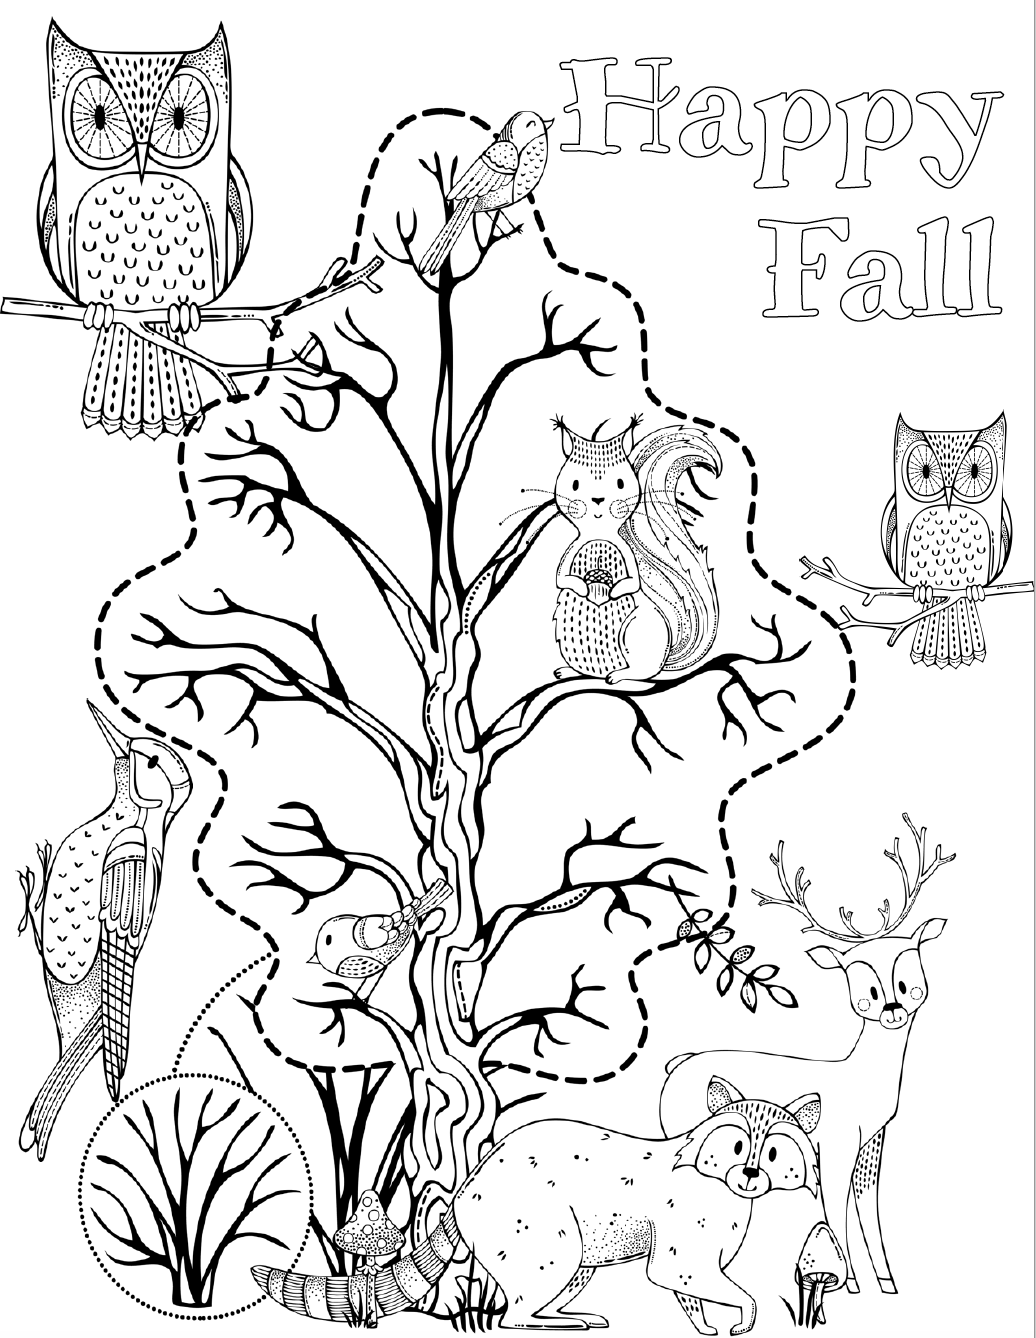 5 Free Printable Halloween Coloring Pages For Kids Halloween Coloring Pages Fall Coloring Pages Halloween Coloring